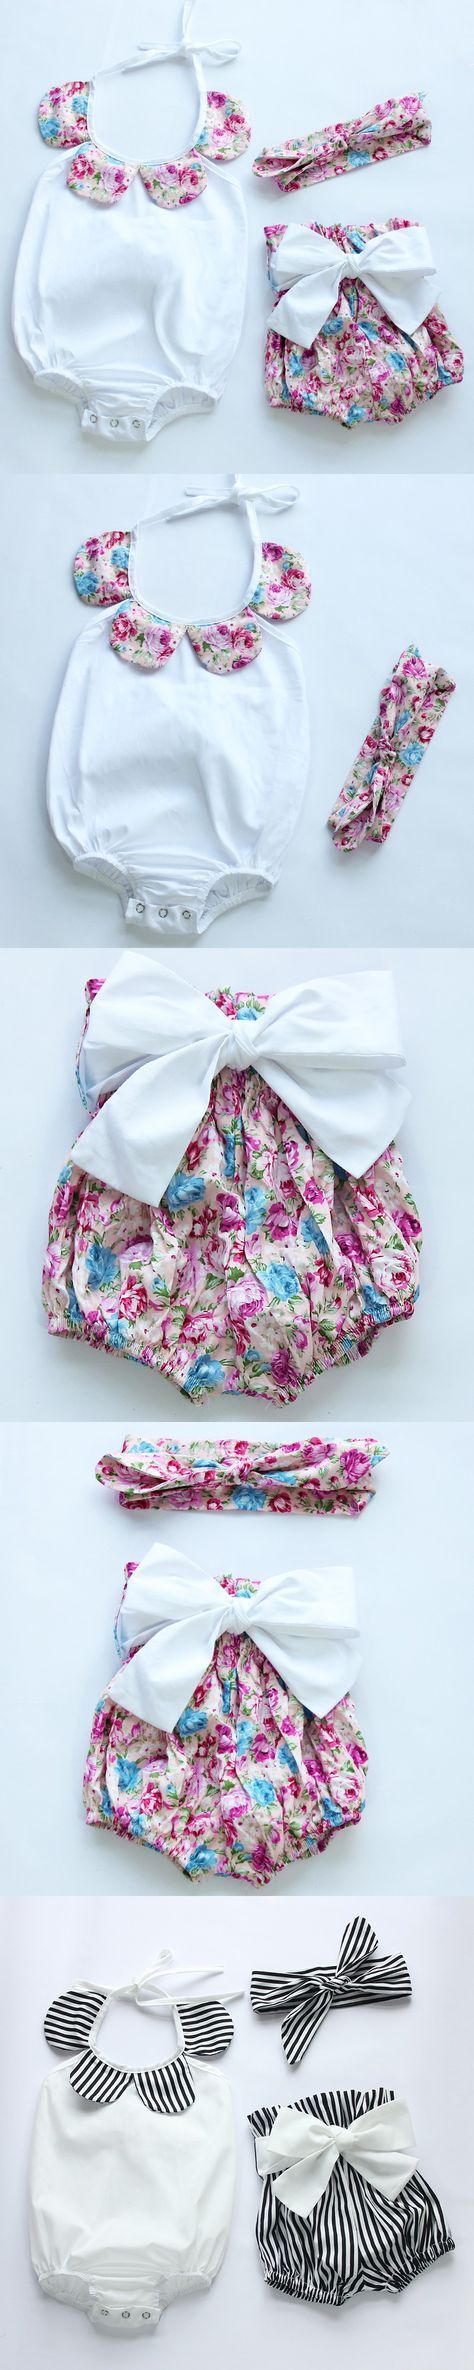 Newborn baby girl clothes 2016 hot sell Ruffled vintage flower Baby Girl rpmpers sets boutique summer style baby rompers